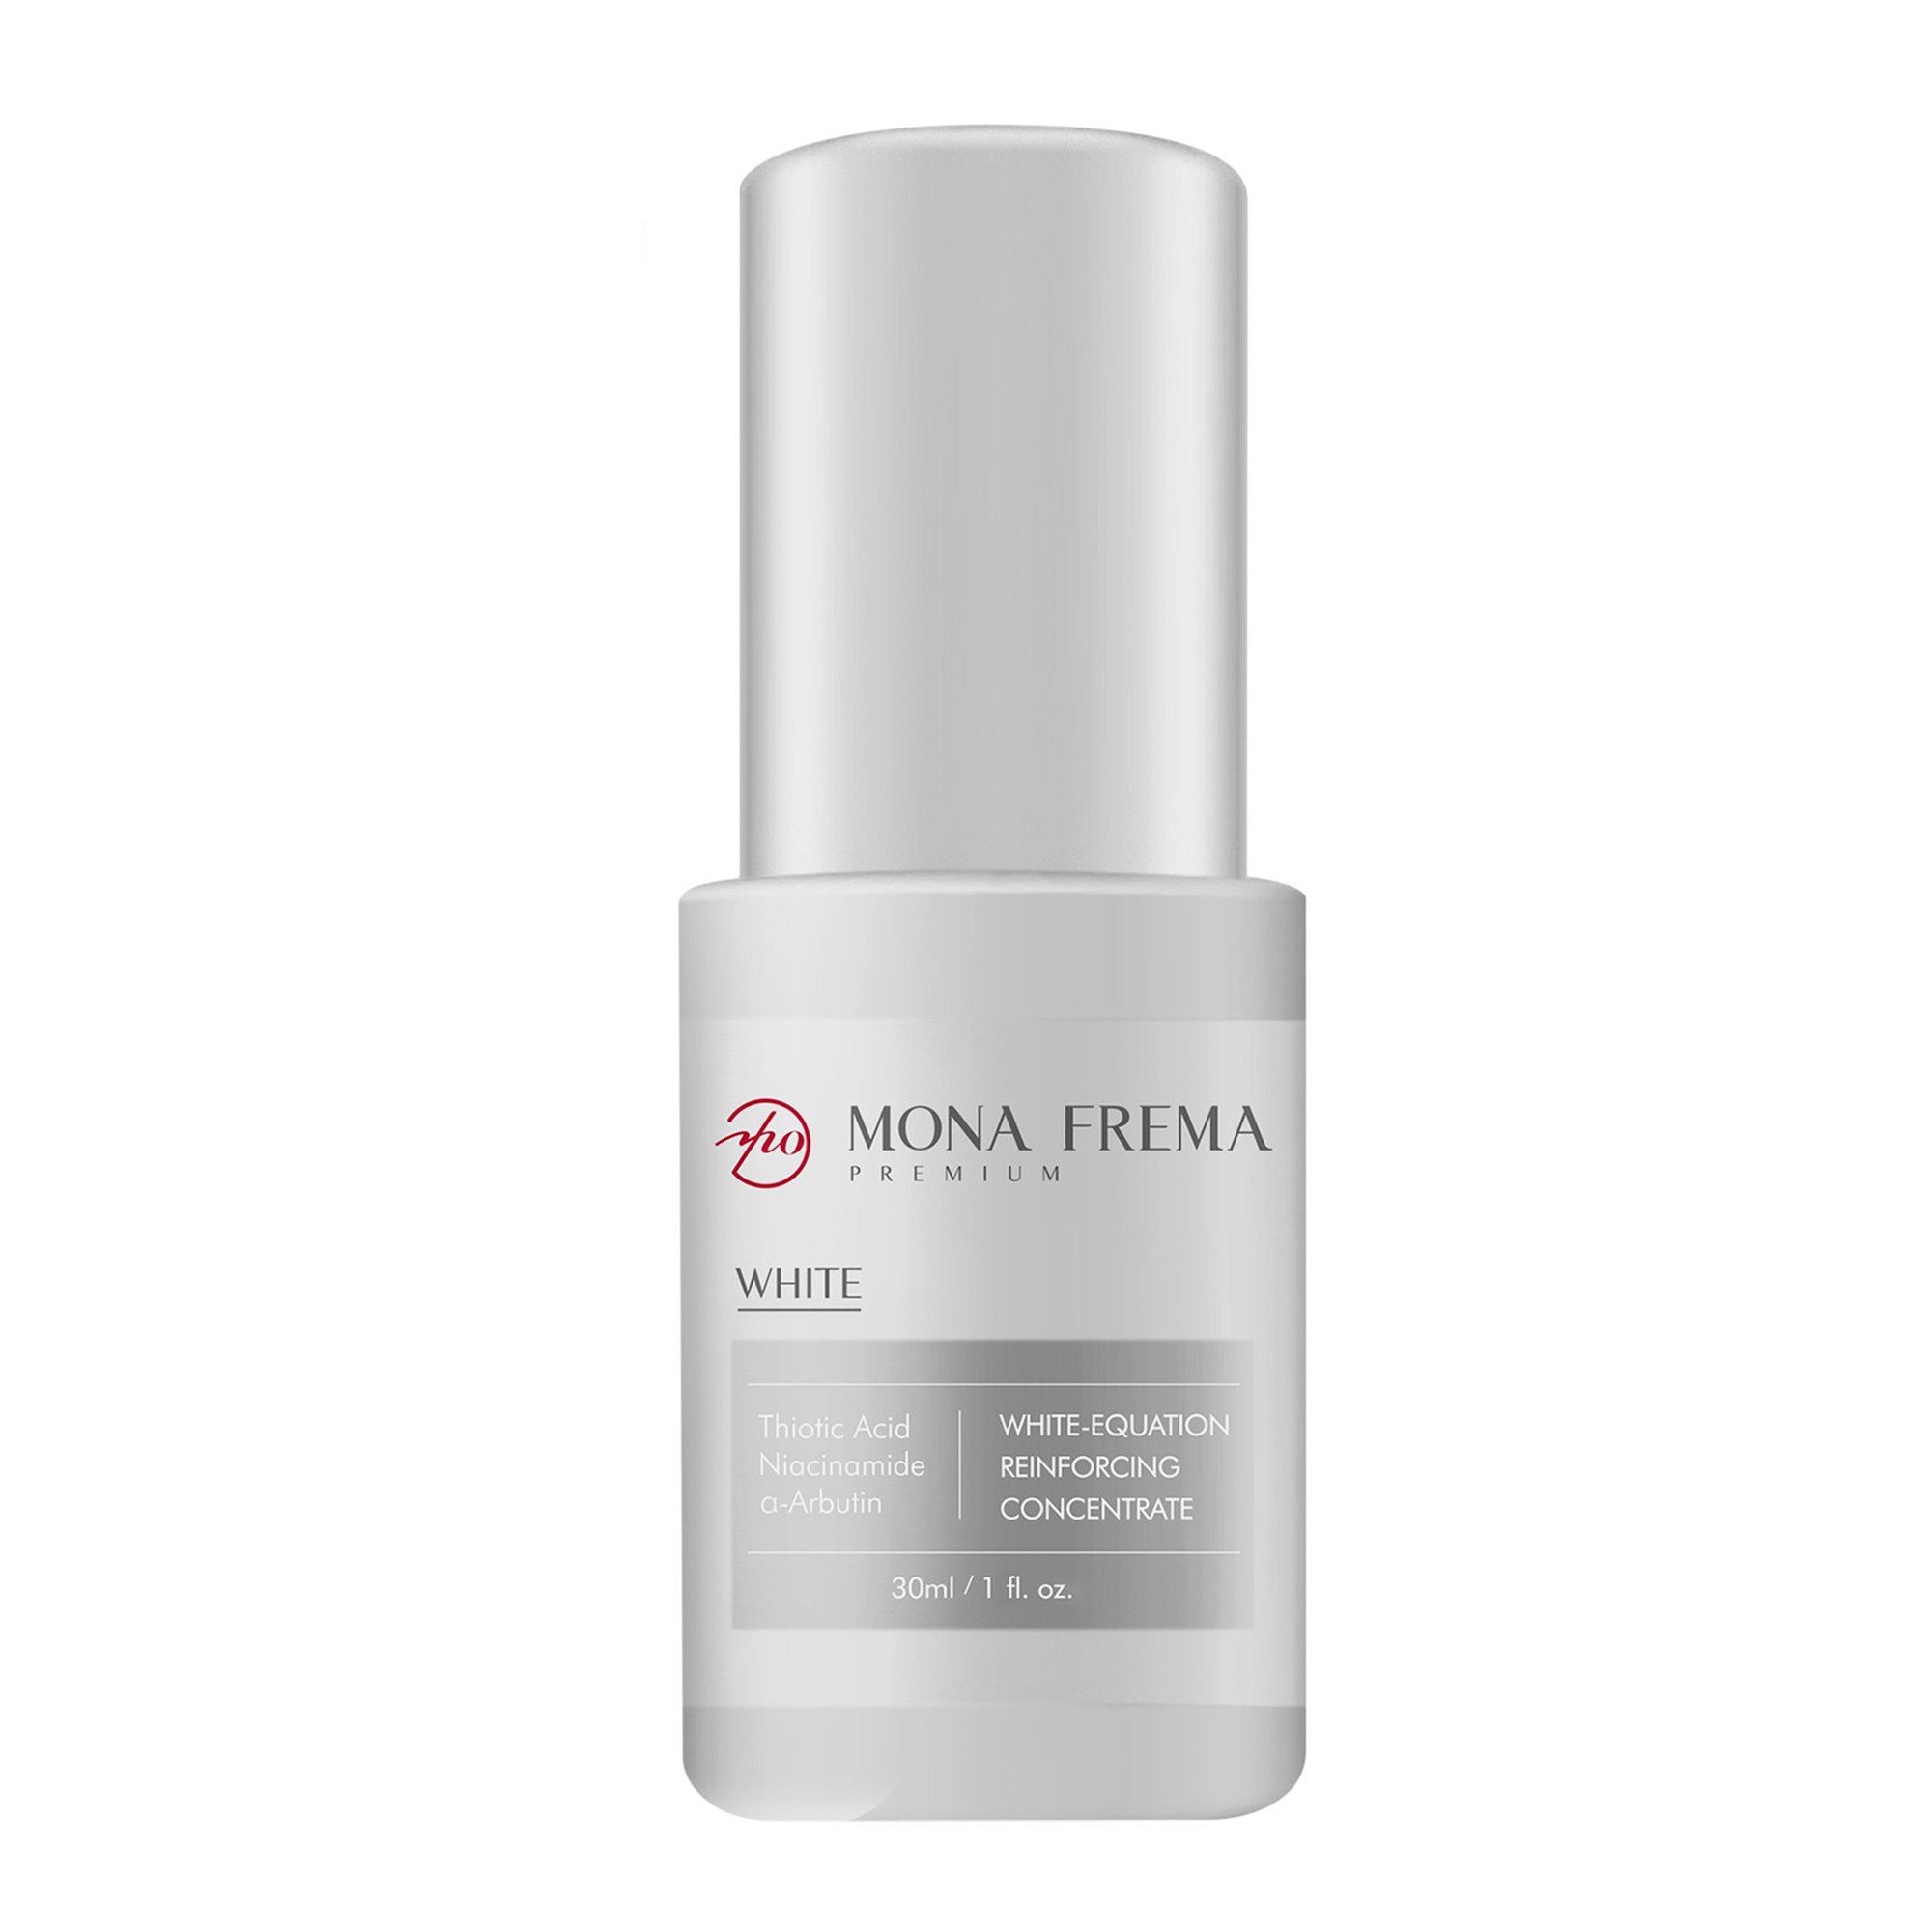 Kem dưỡng trắng Mona Frema White-Equation Reinforcing Concentrate (30ml)